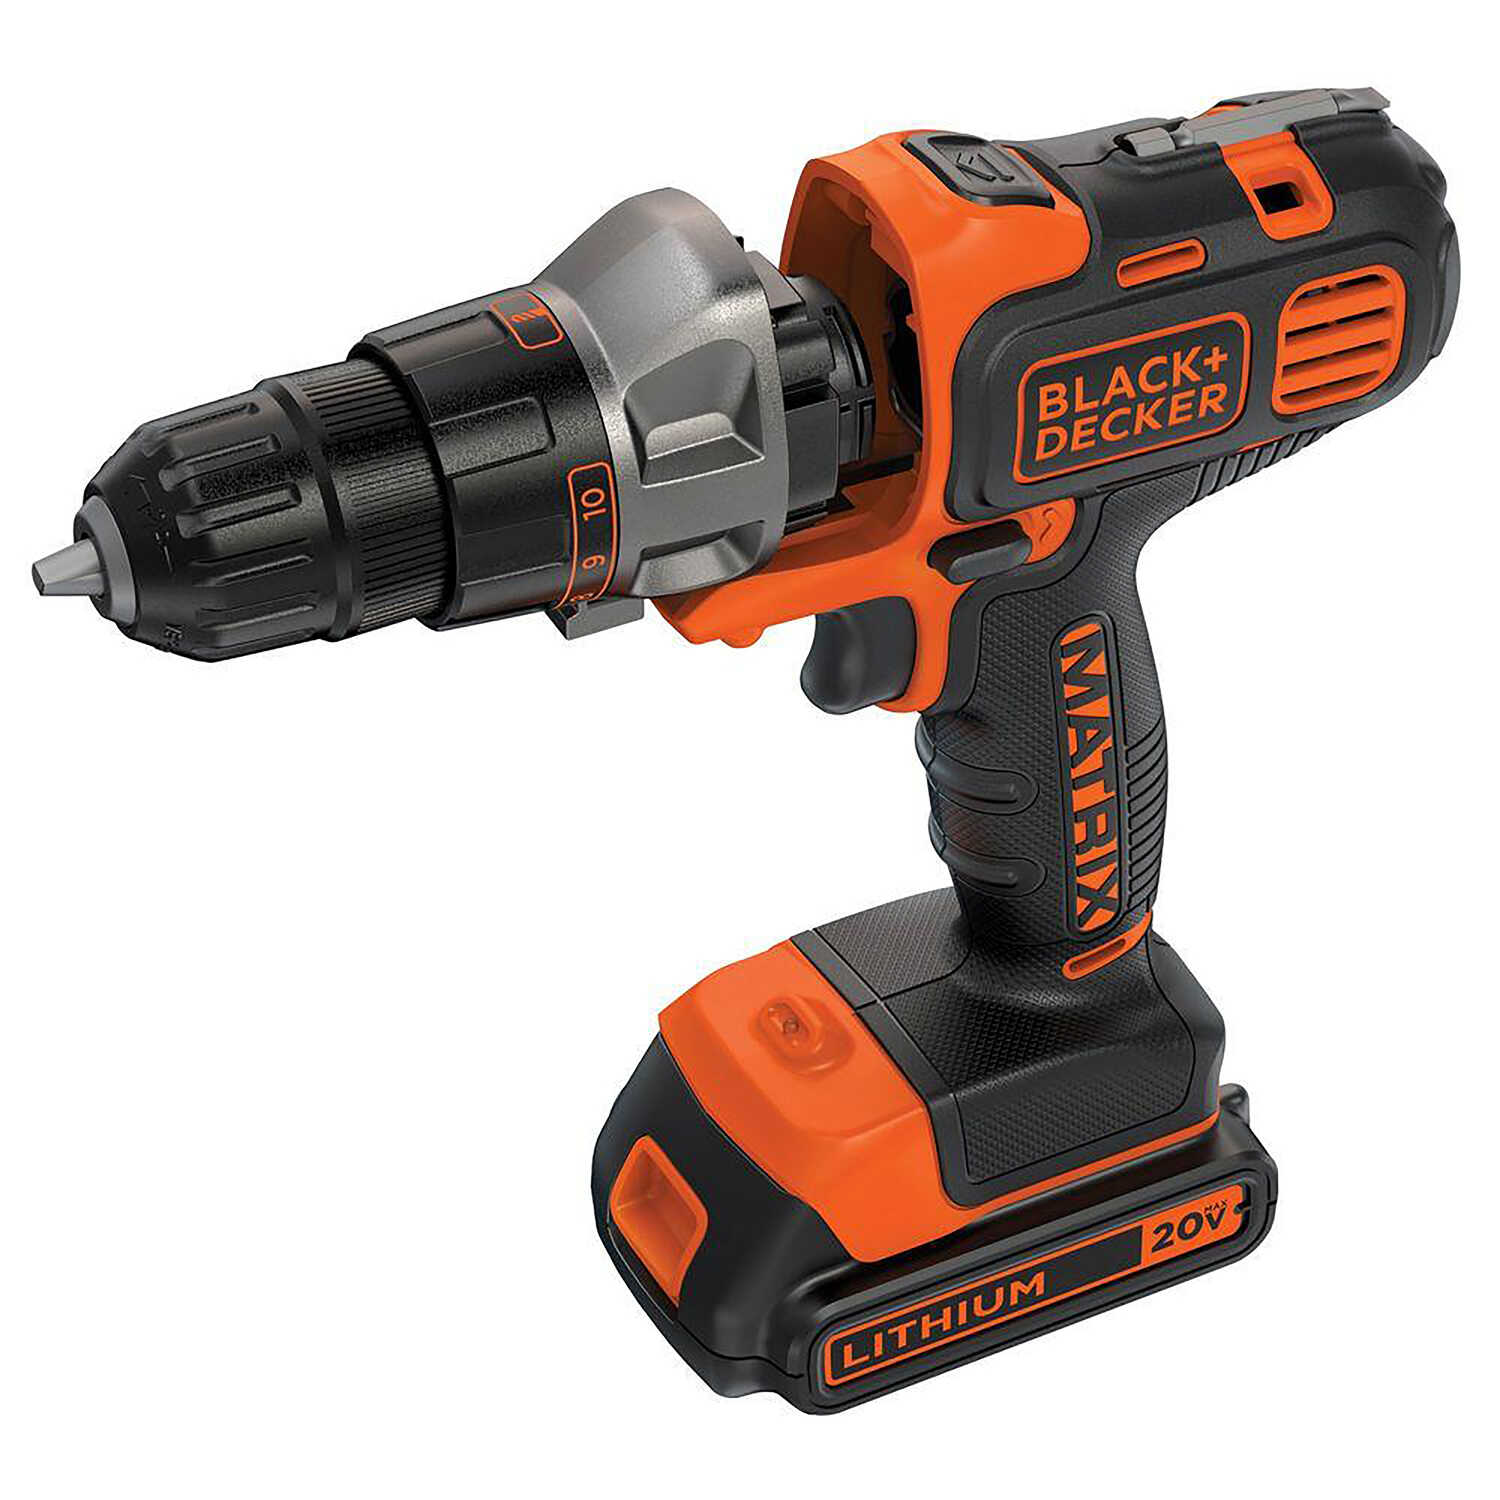 Black and Decker  MATRIX  20 volt Brushed  Cordless Compact Drill/Driver  Kit  3/8 in. 800 rpm